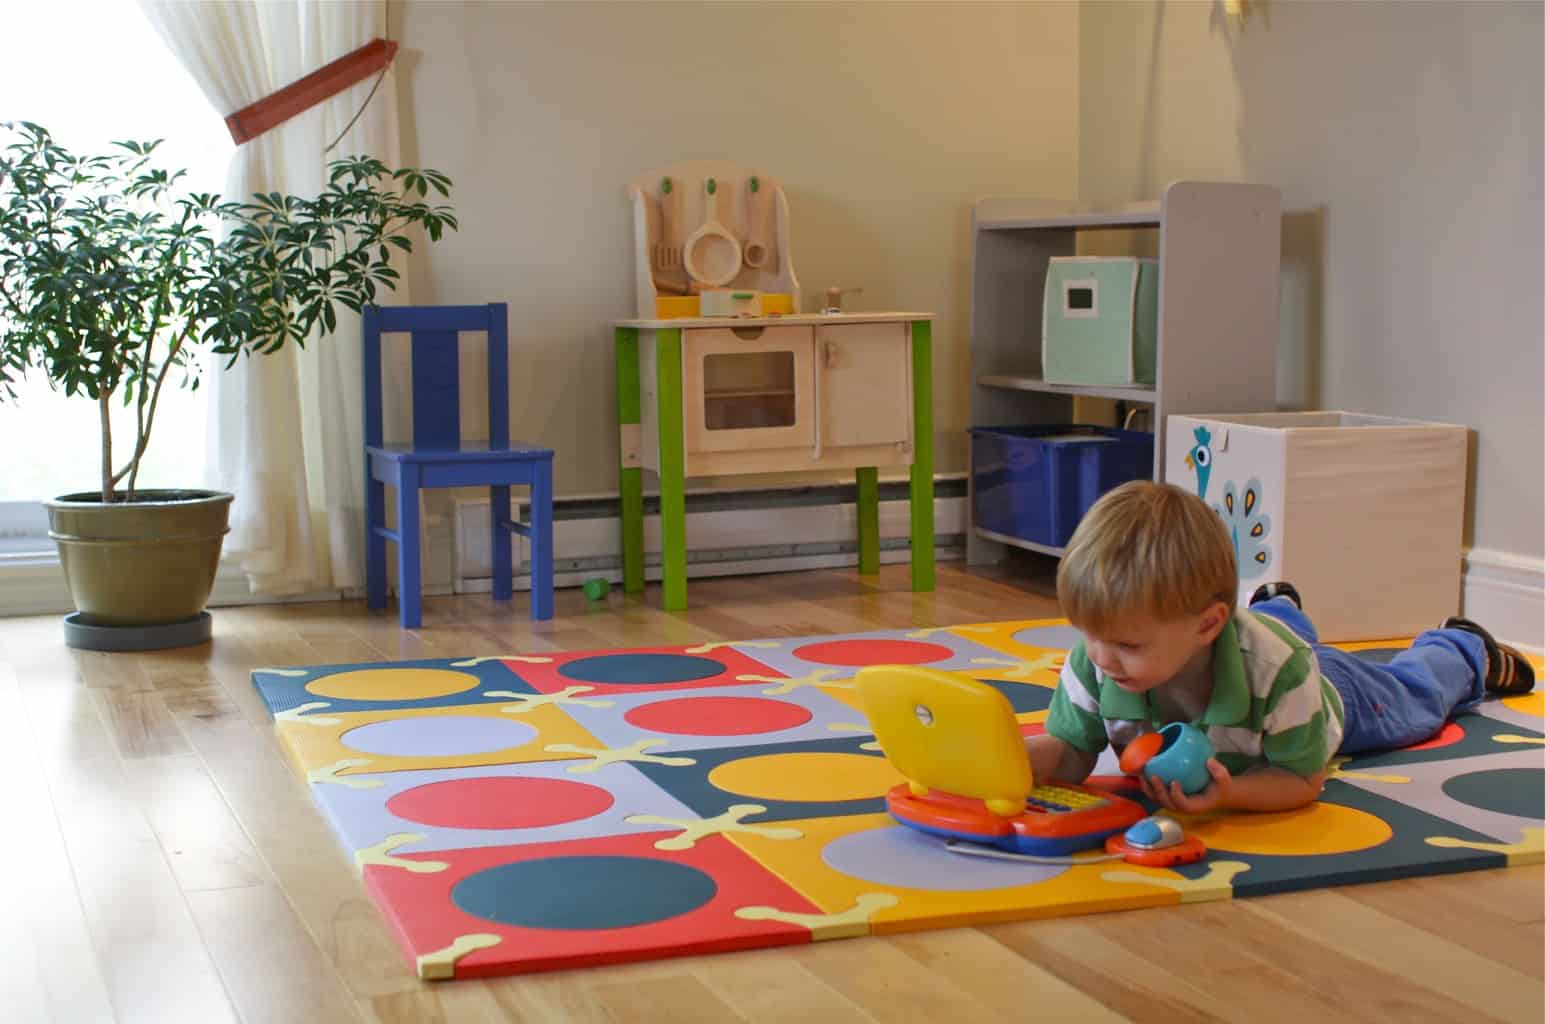 Kid Friendly Flooring Options   Rubber Carpet